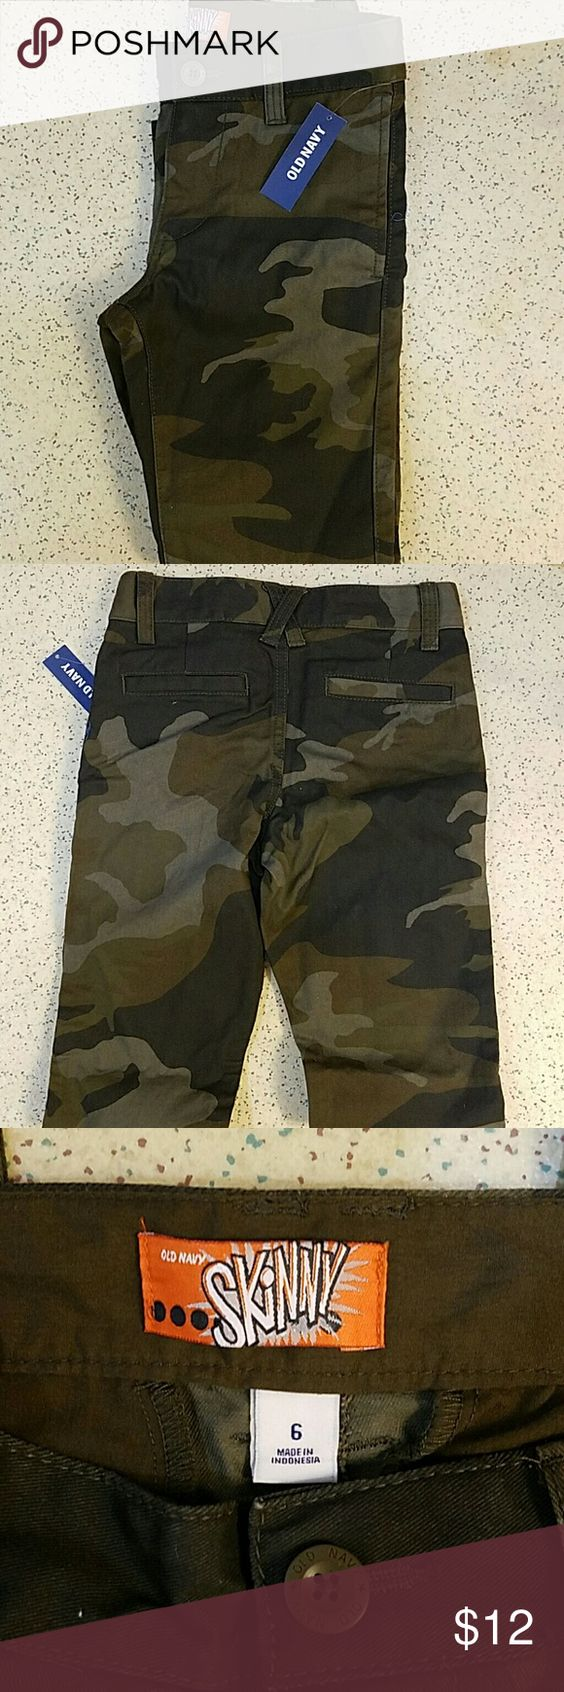 Camouflage skinny jeans (boy) Camouflage skinny jeans. Brand new with tags. Size 6 in little boys. Old Navy Bottoms Jeans